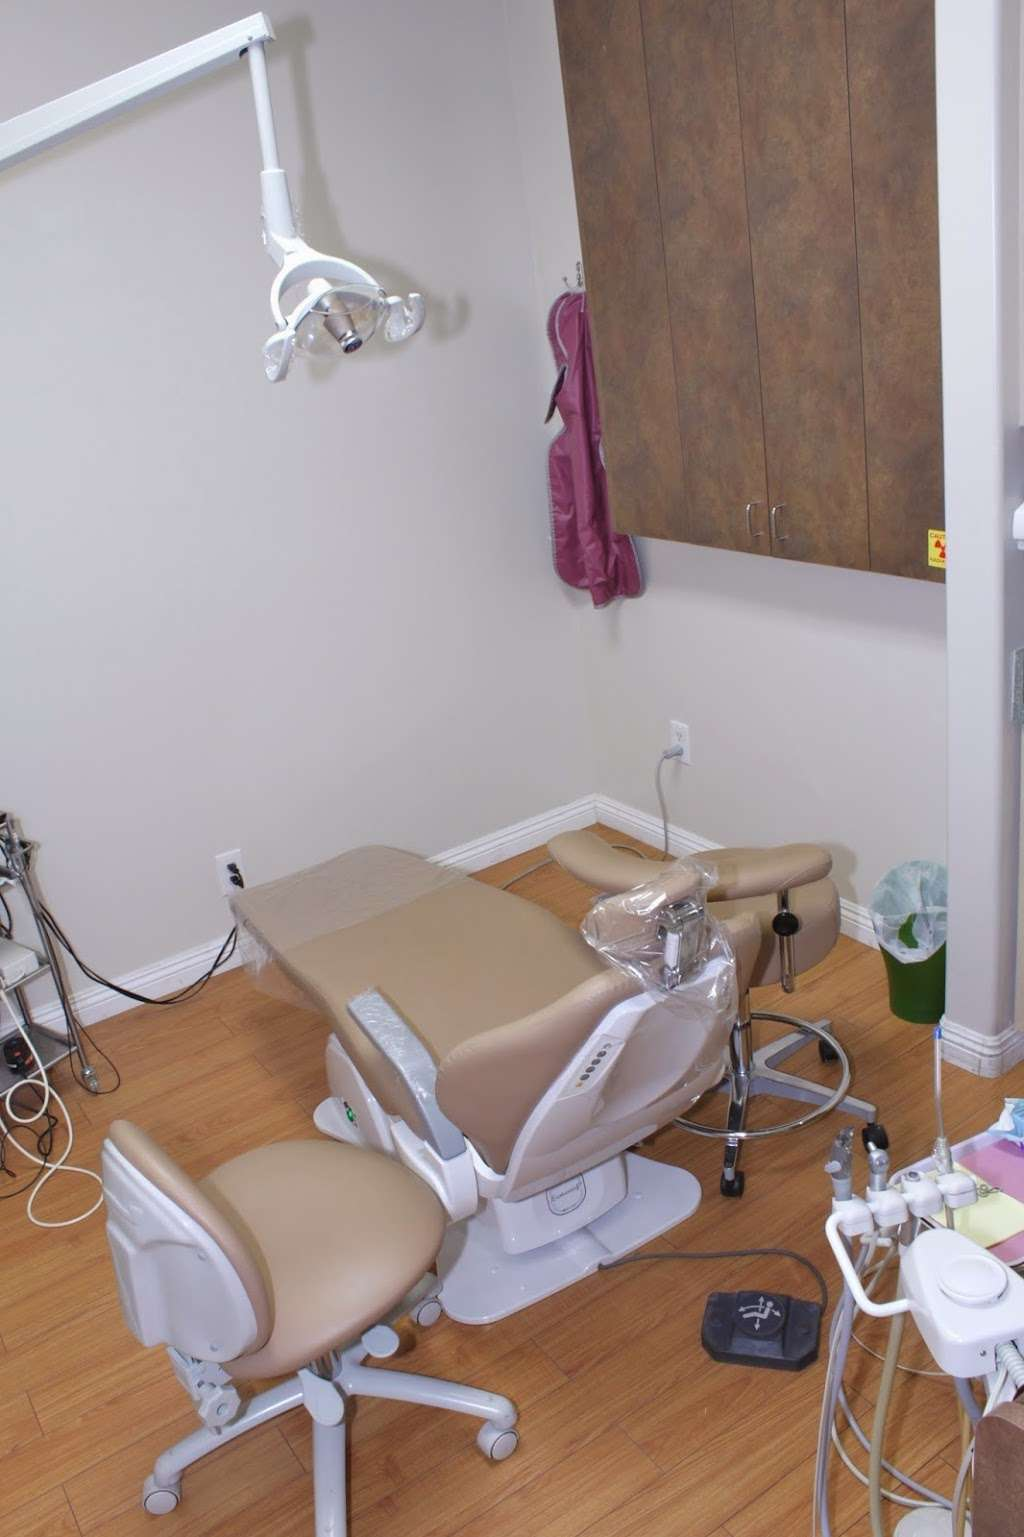 GT Family Dentistry - dentist  | Photo 3 of 9 | Address: 6334 Lincoln Ave, Cypress, CA 90630, USA | Phone: (714) 527-1801